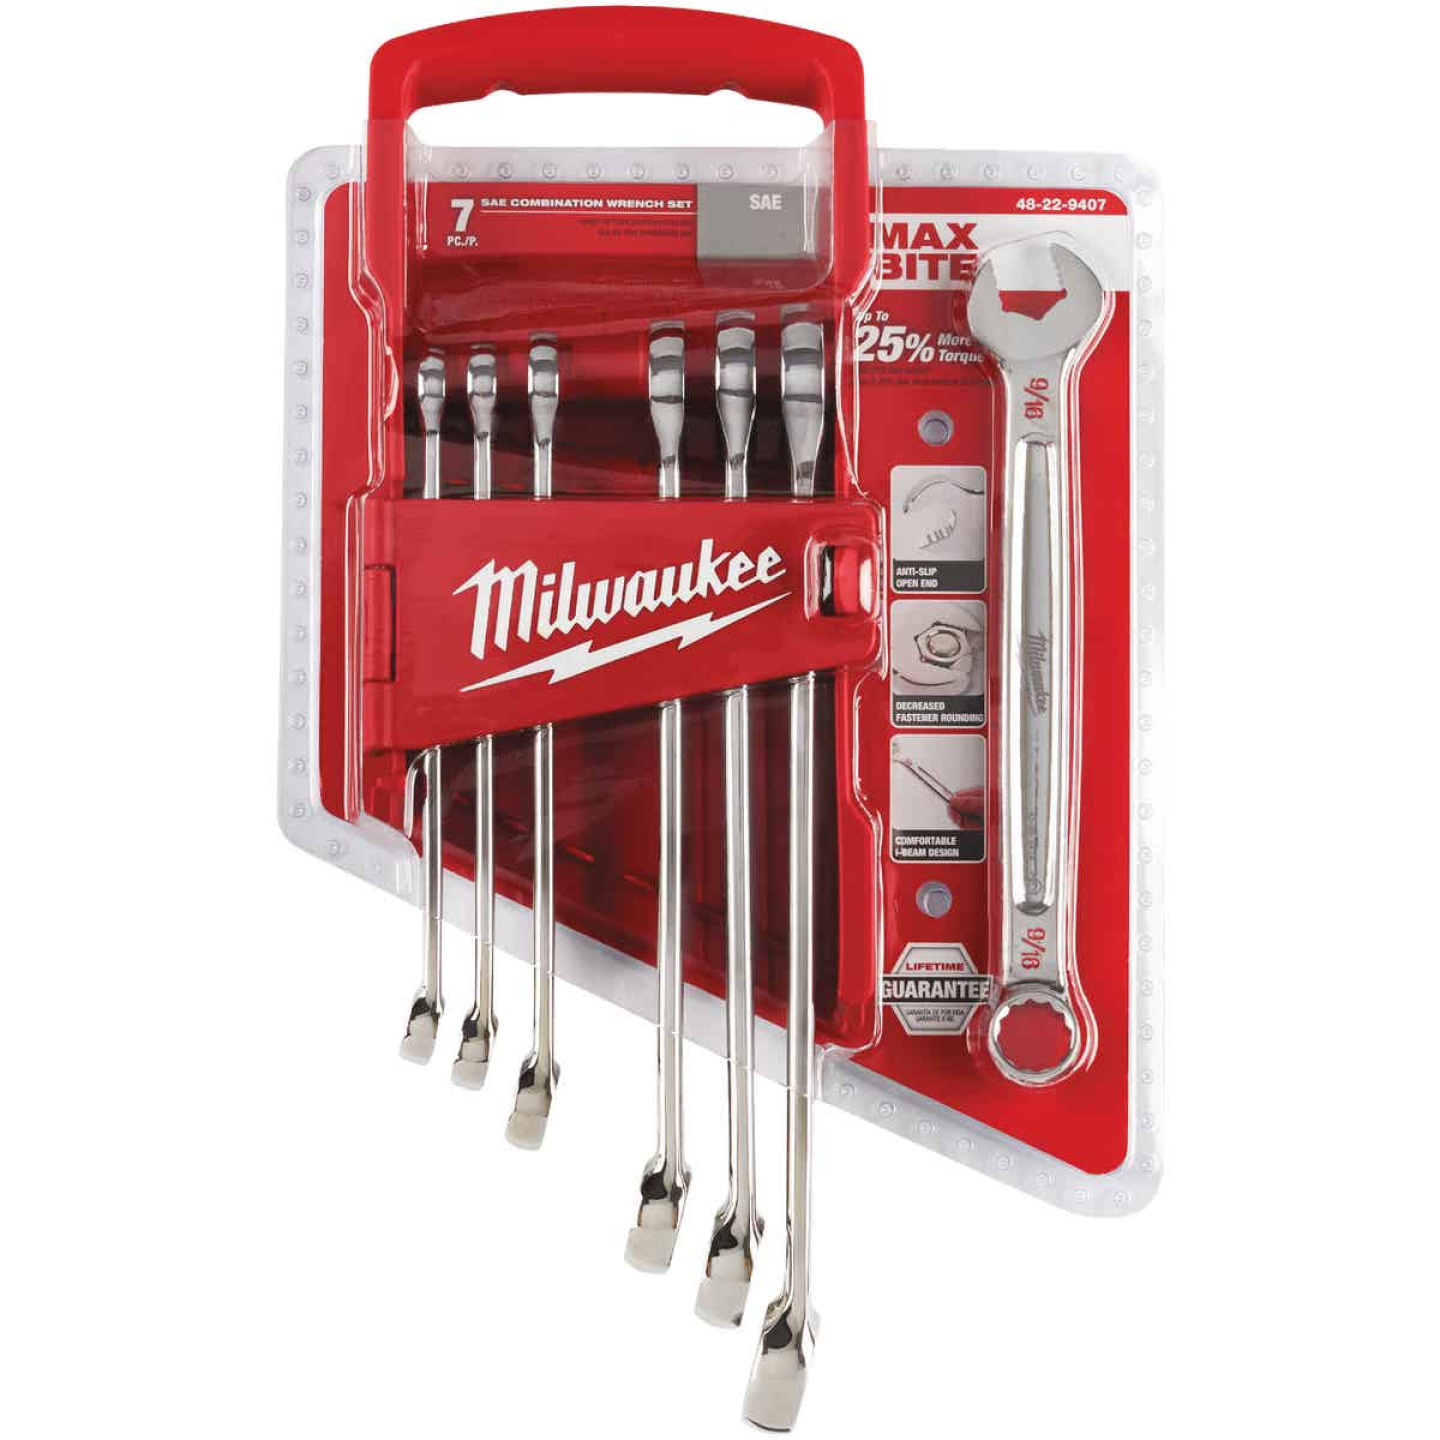 Milwaukee Standard 12-Point Combination Wrench Set (7-Piece) Image 2